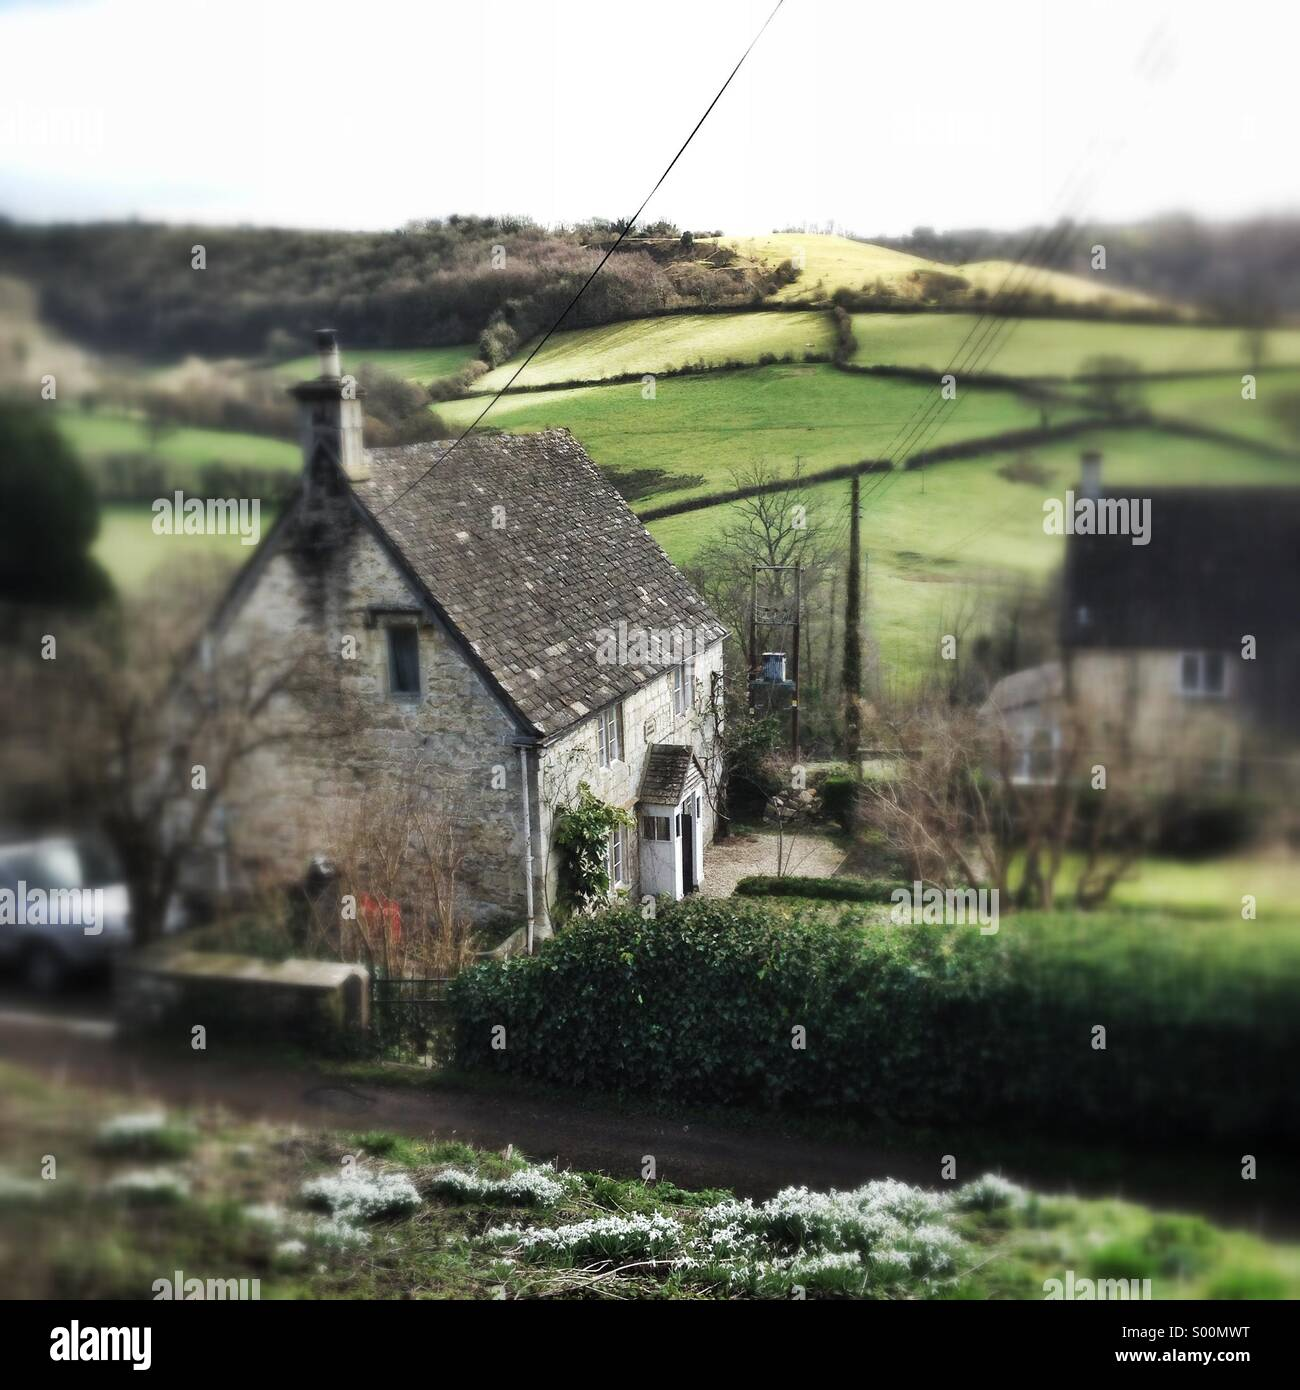 Laurie Lee's cottage in Slad, Gloucestershire. Stock Photo